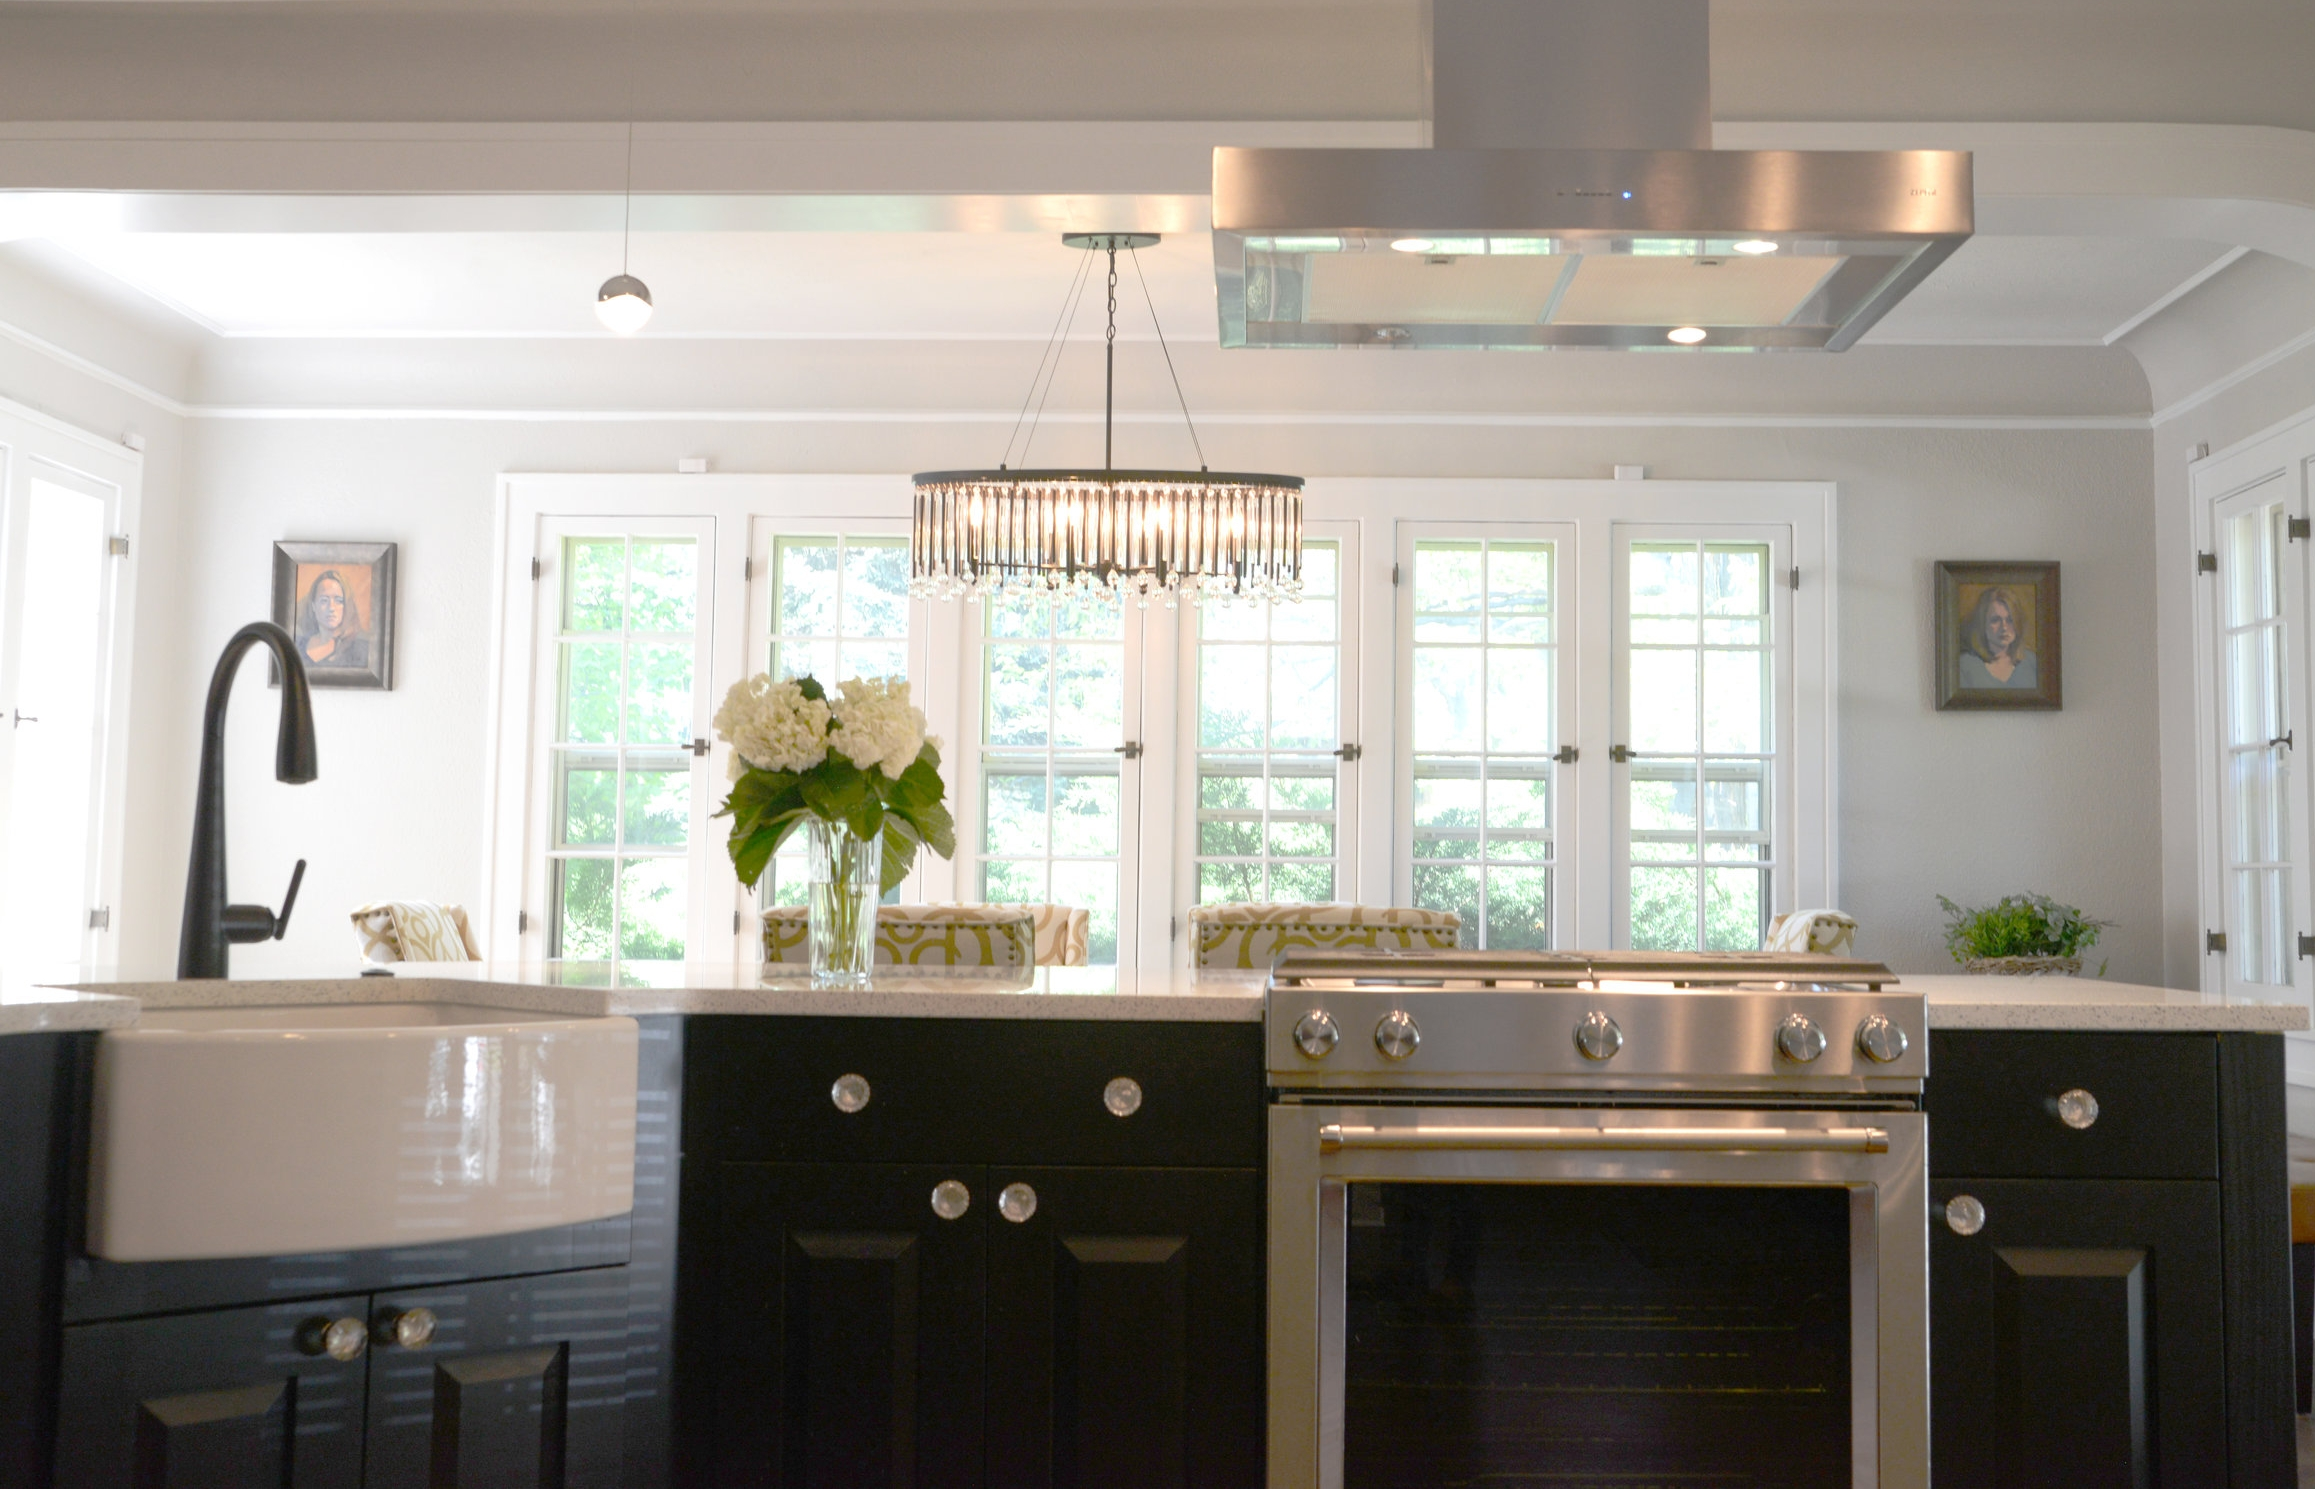 Kitchen and dining with farmhouse sink and open windows